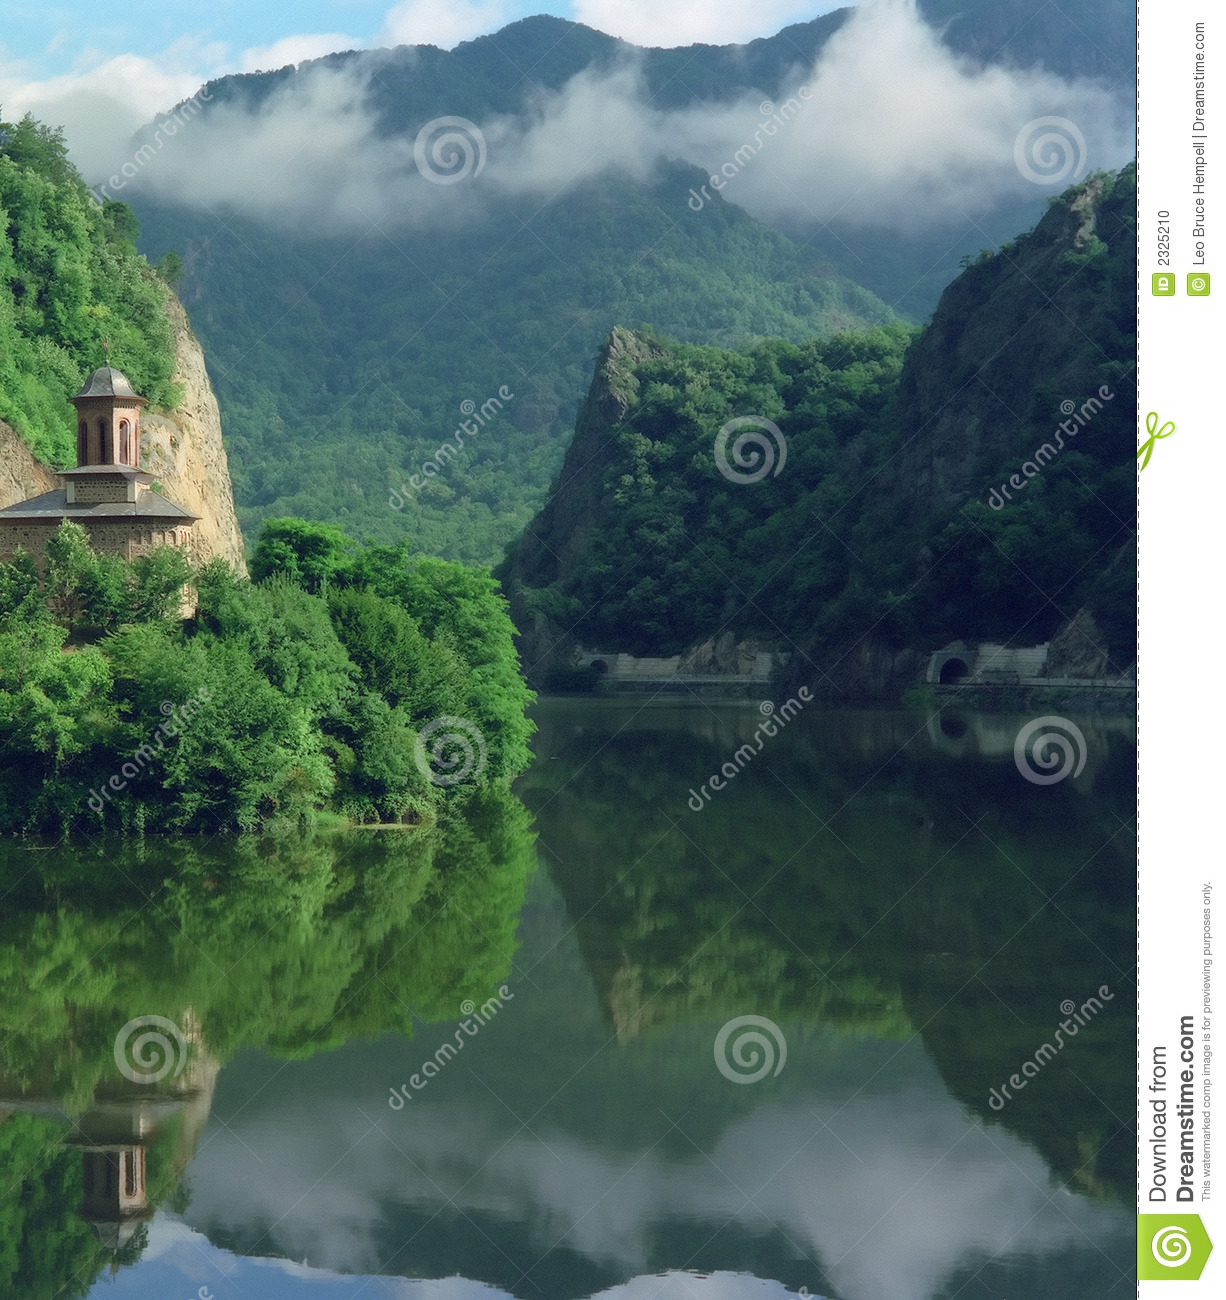 File Cascada Tvindefossen furthermore Man Made Waterfall China3 also World besides Colores Actuan Sentimientos Tuyo likewise 466. on waterfall in romania